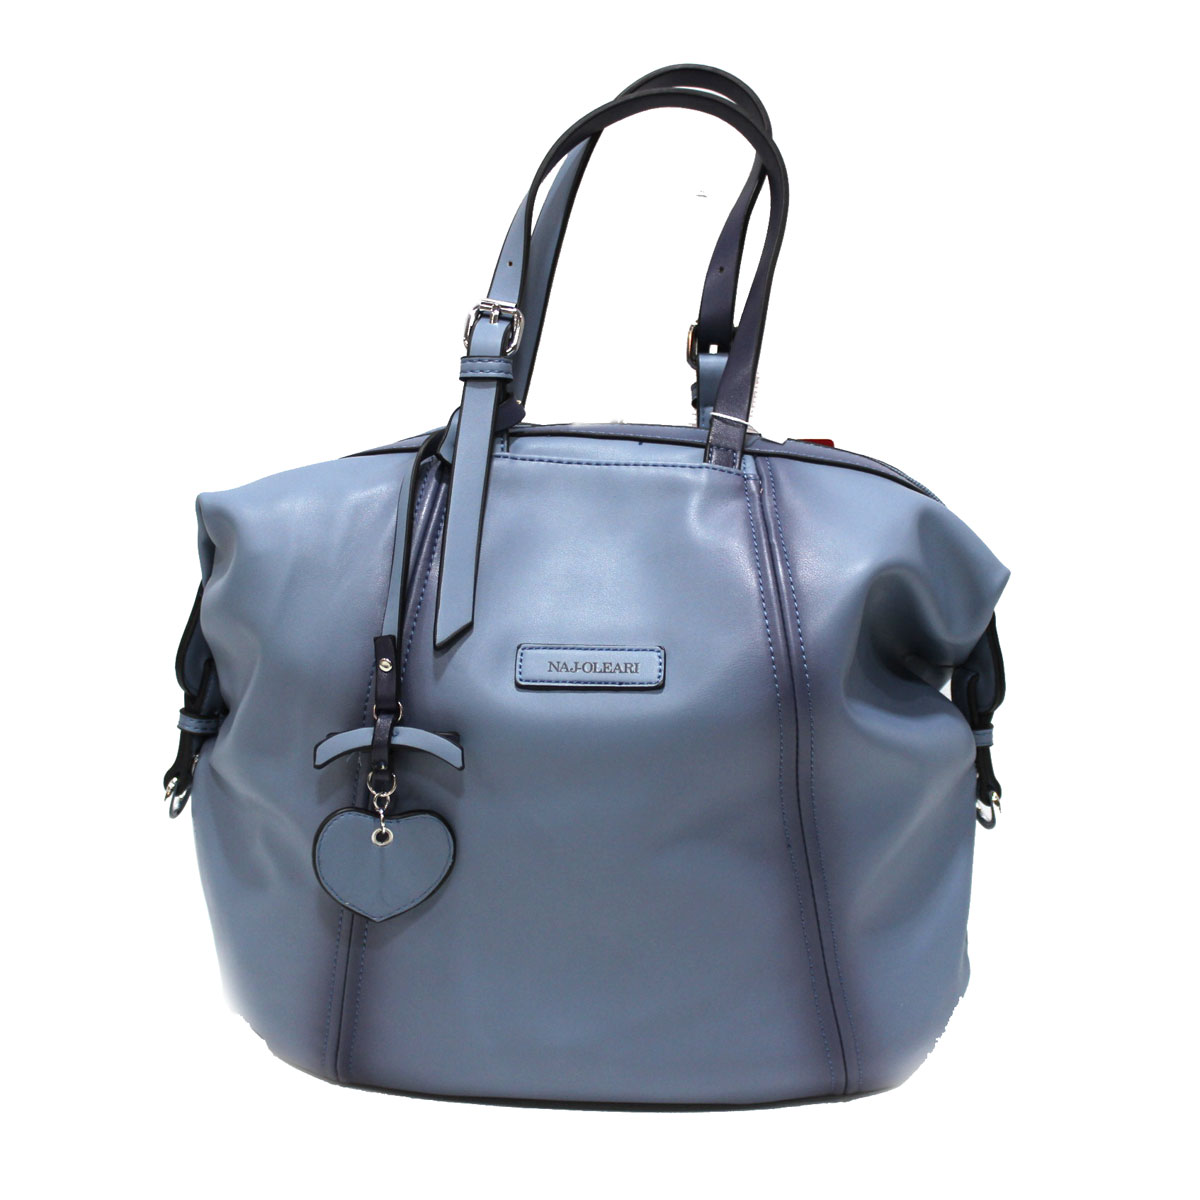 Guess Borsa a tracolla in Pelle in Ocra Second hand Guess